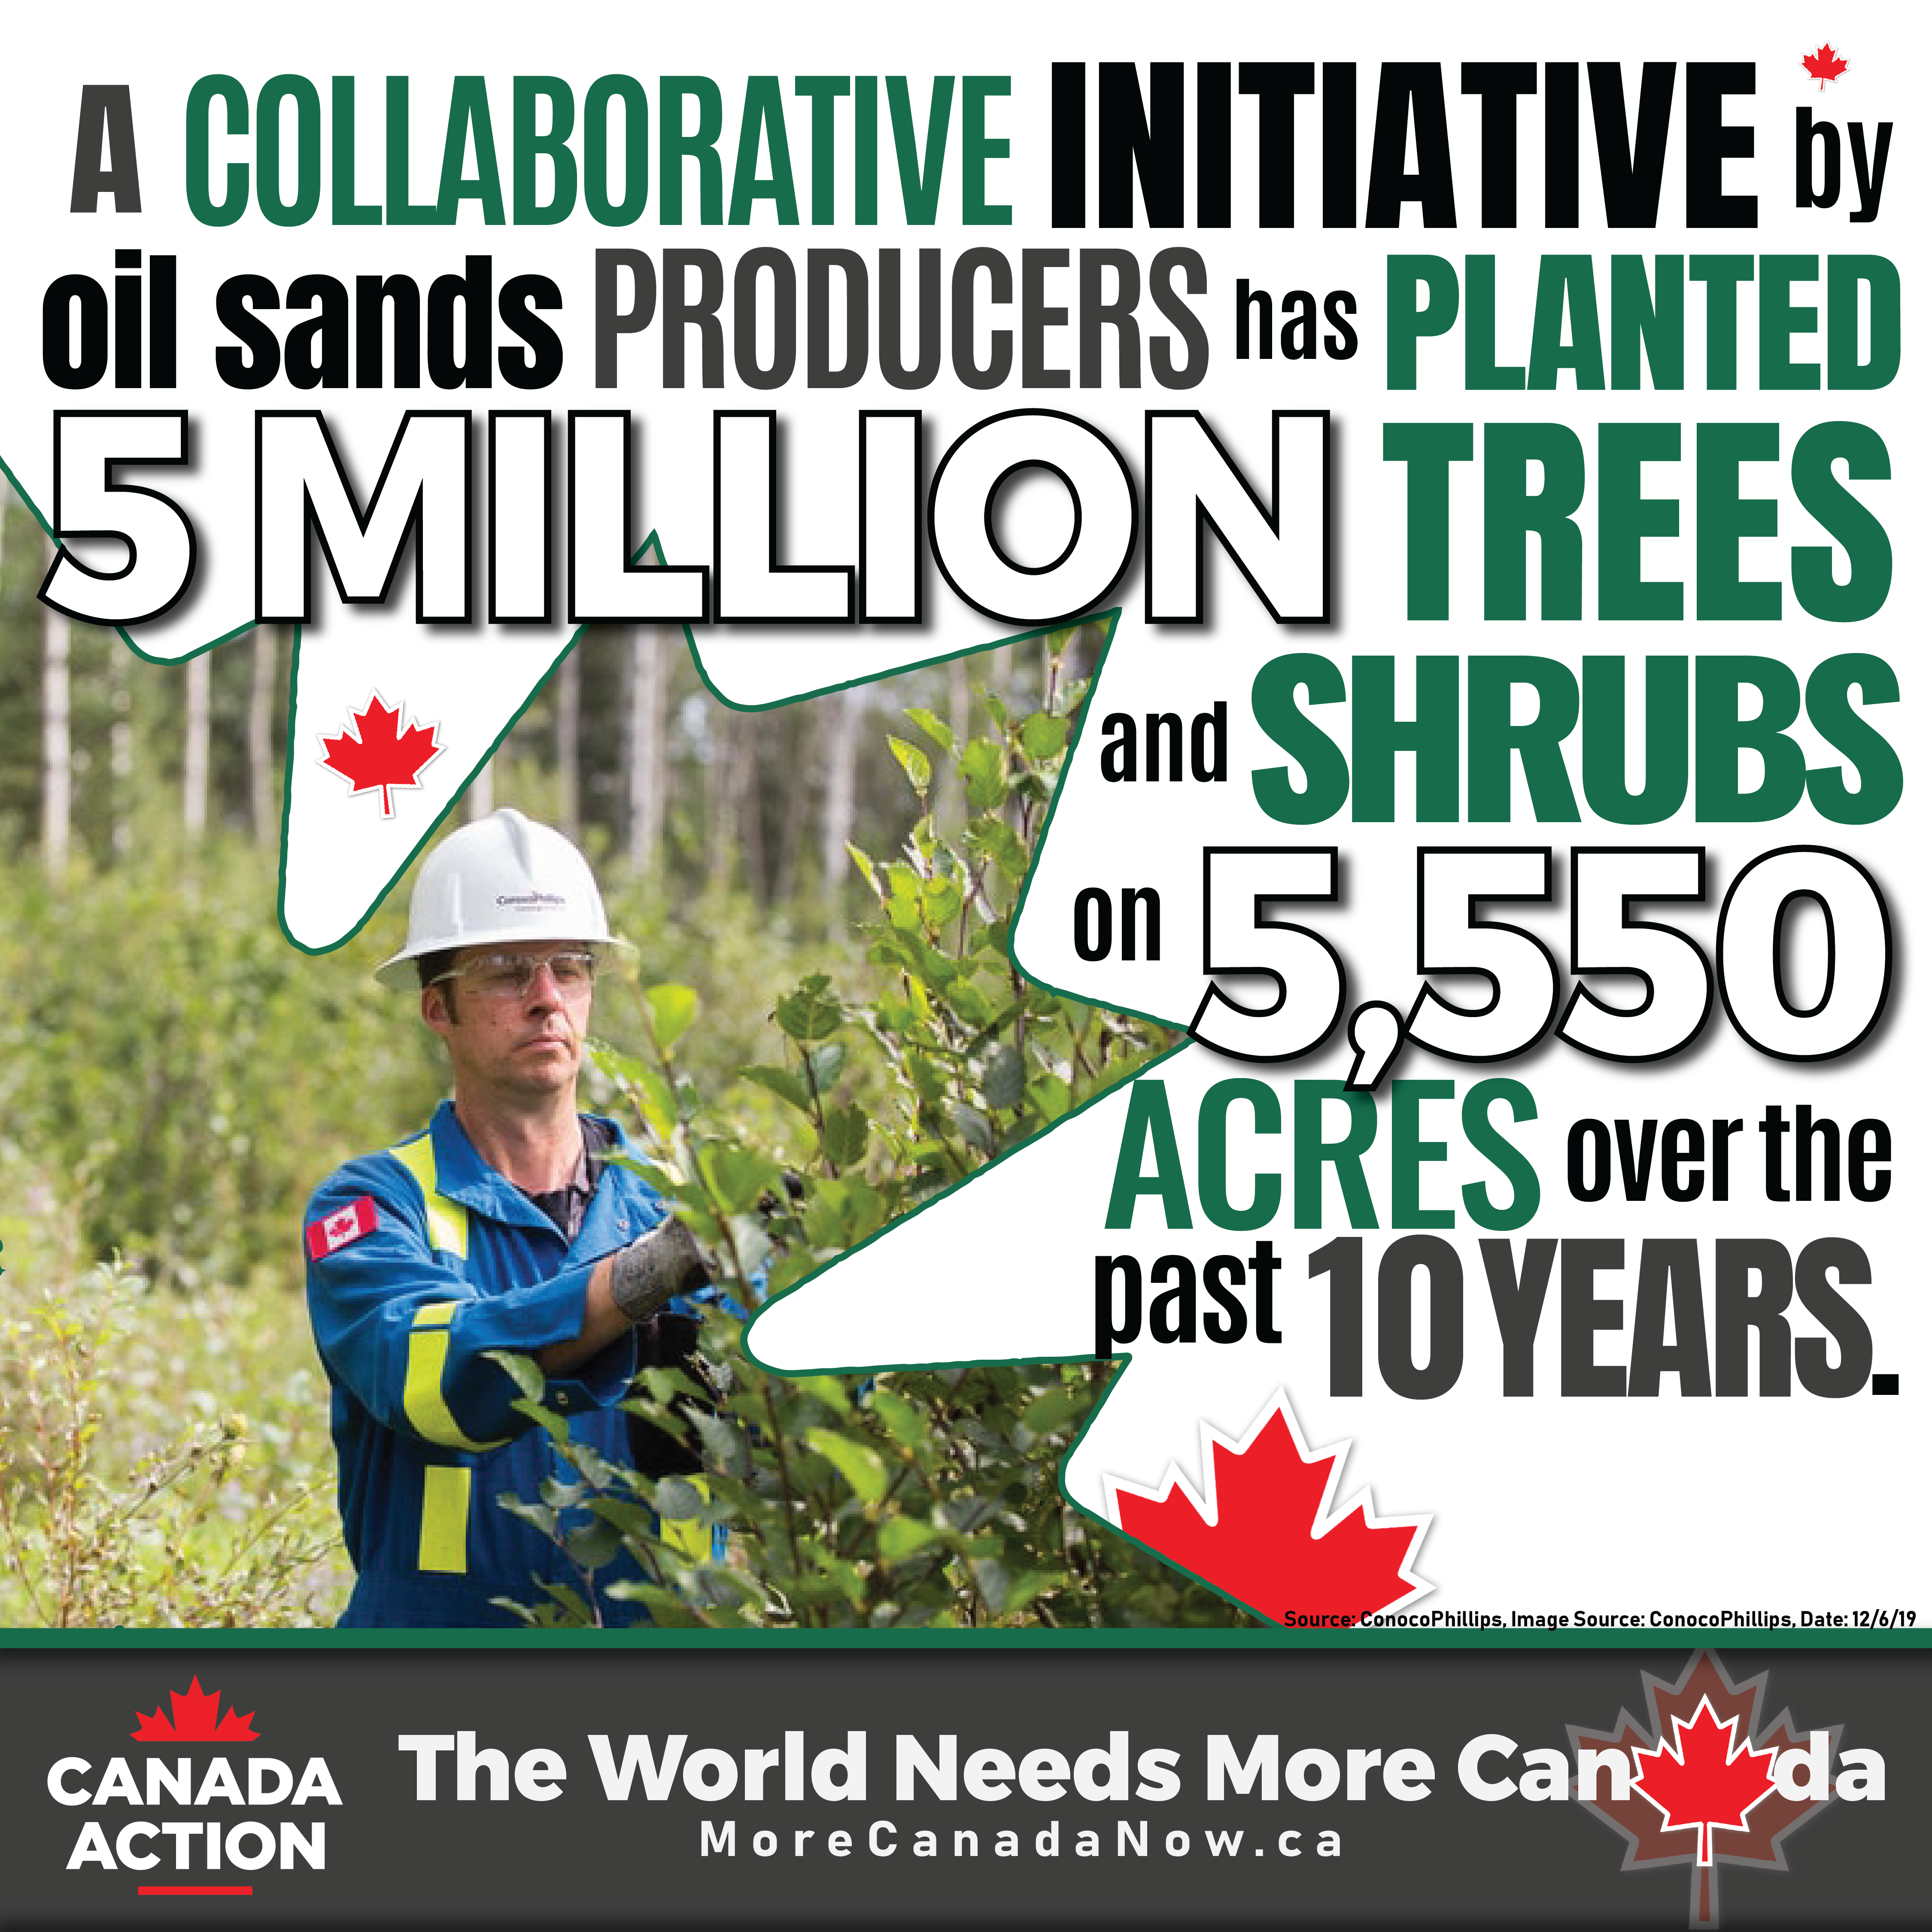 Oil Sands Reclamation - Producers Plant 5 Million Trees and Shrubs